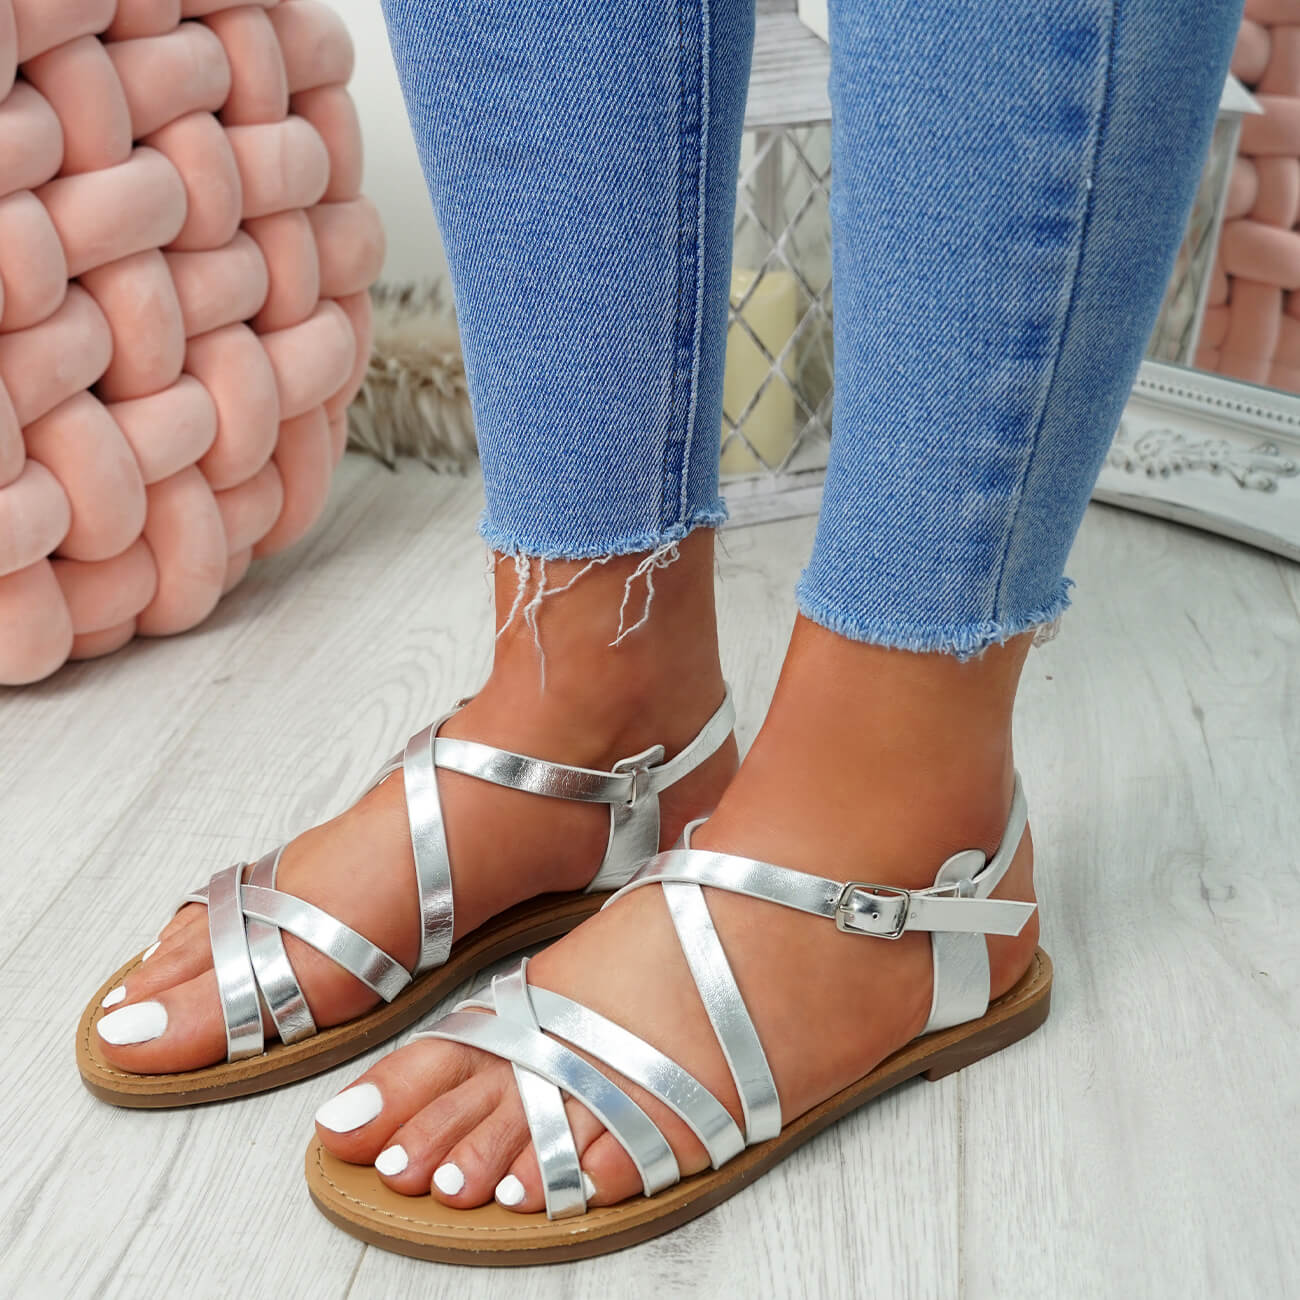 WOMENS-LADIES-ANKLE-STRAP-PEEP-TOE-BUCKLE-FLAT-SANDALS-SUMMER-CASUAL-SHOES thumbnail 23